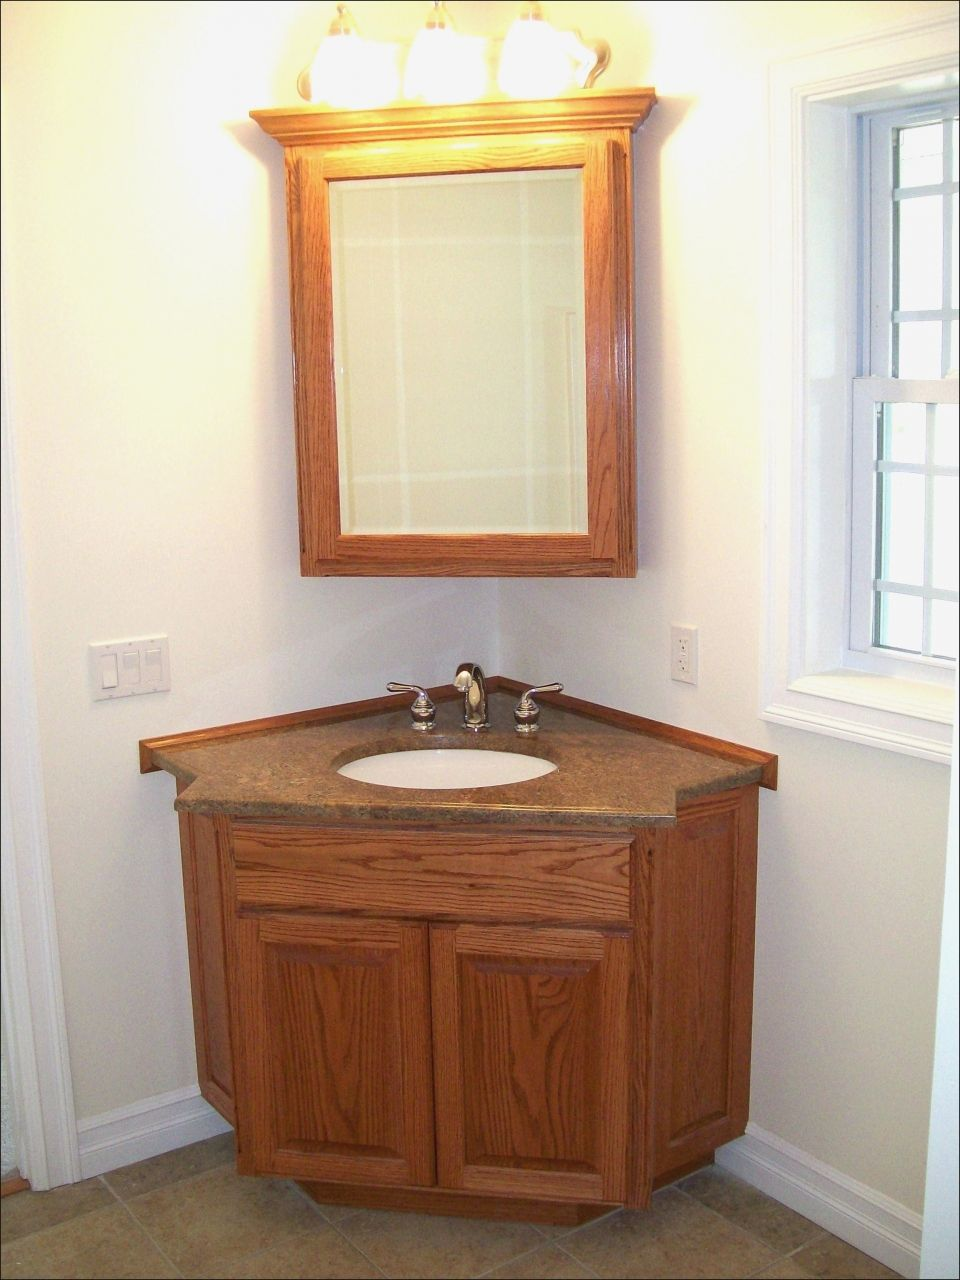 Bathroom Cabinet Ideas In 2021 50 Ideas For Bathroom Storage Small Bathroom Vanities Bathroom Vanities For Sale Corner Sink Bathroom